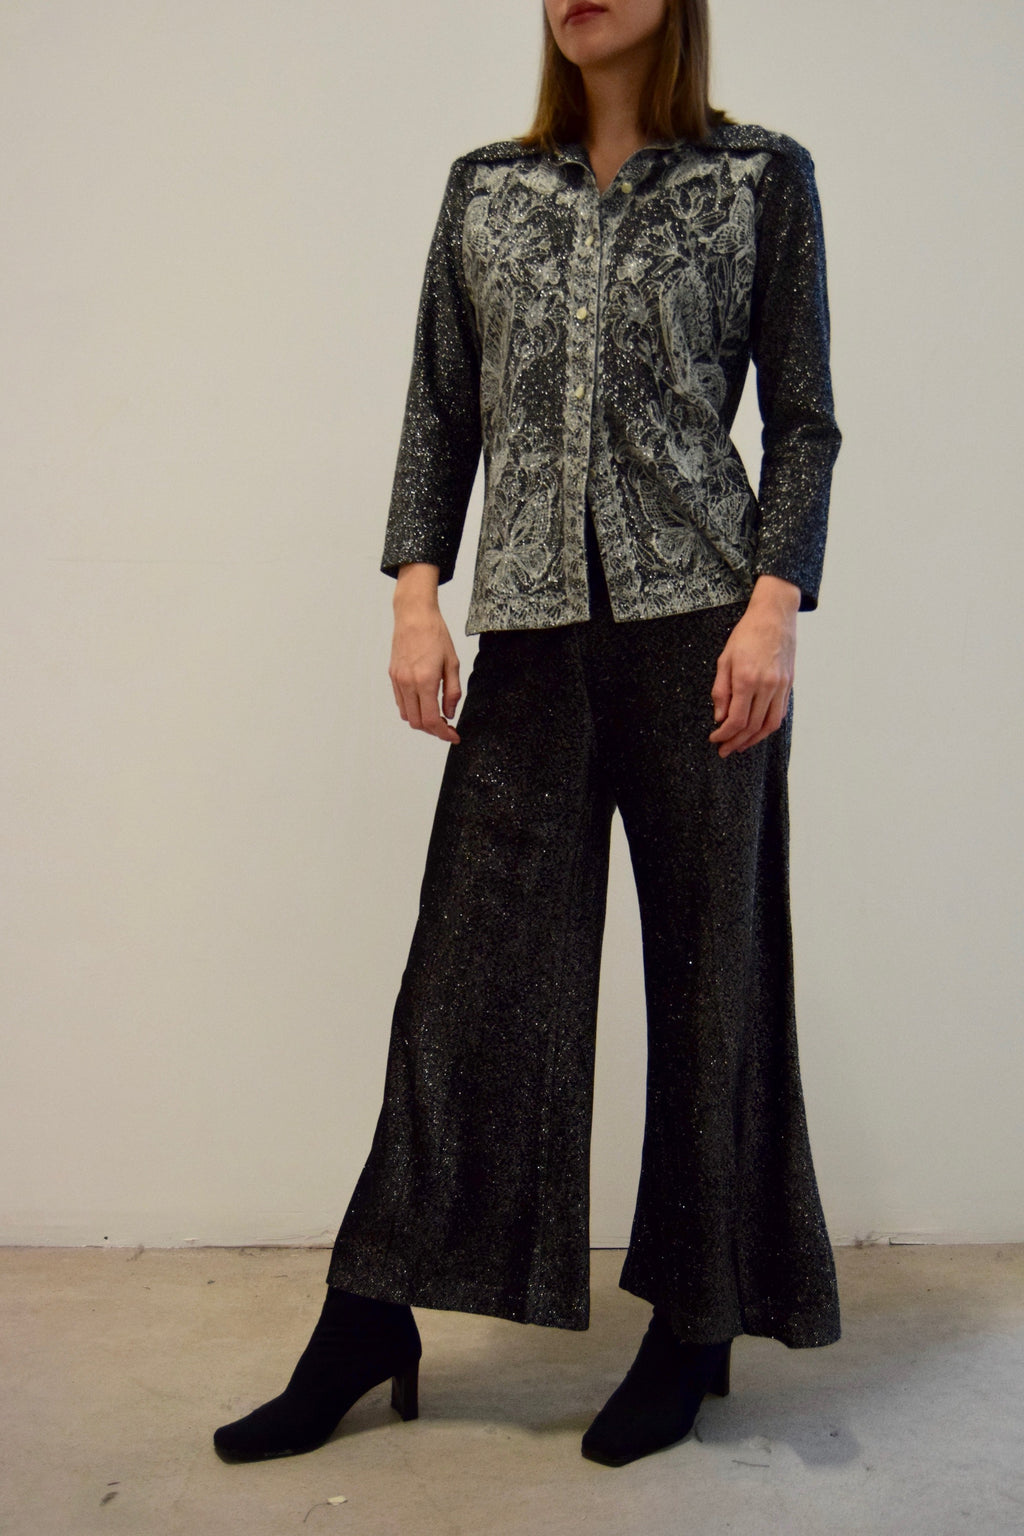 1970's Black and Silver Metallic Butterfly Pant Suit